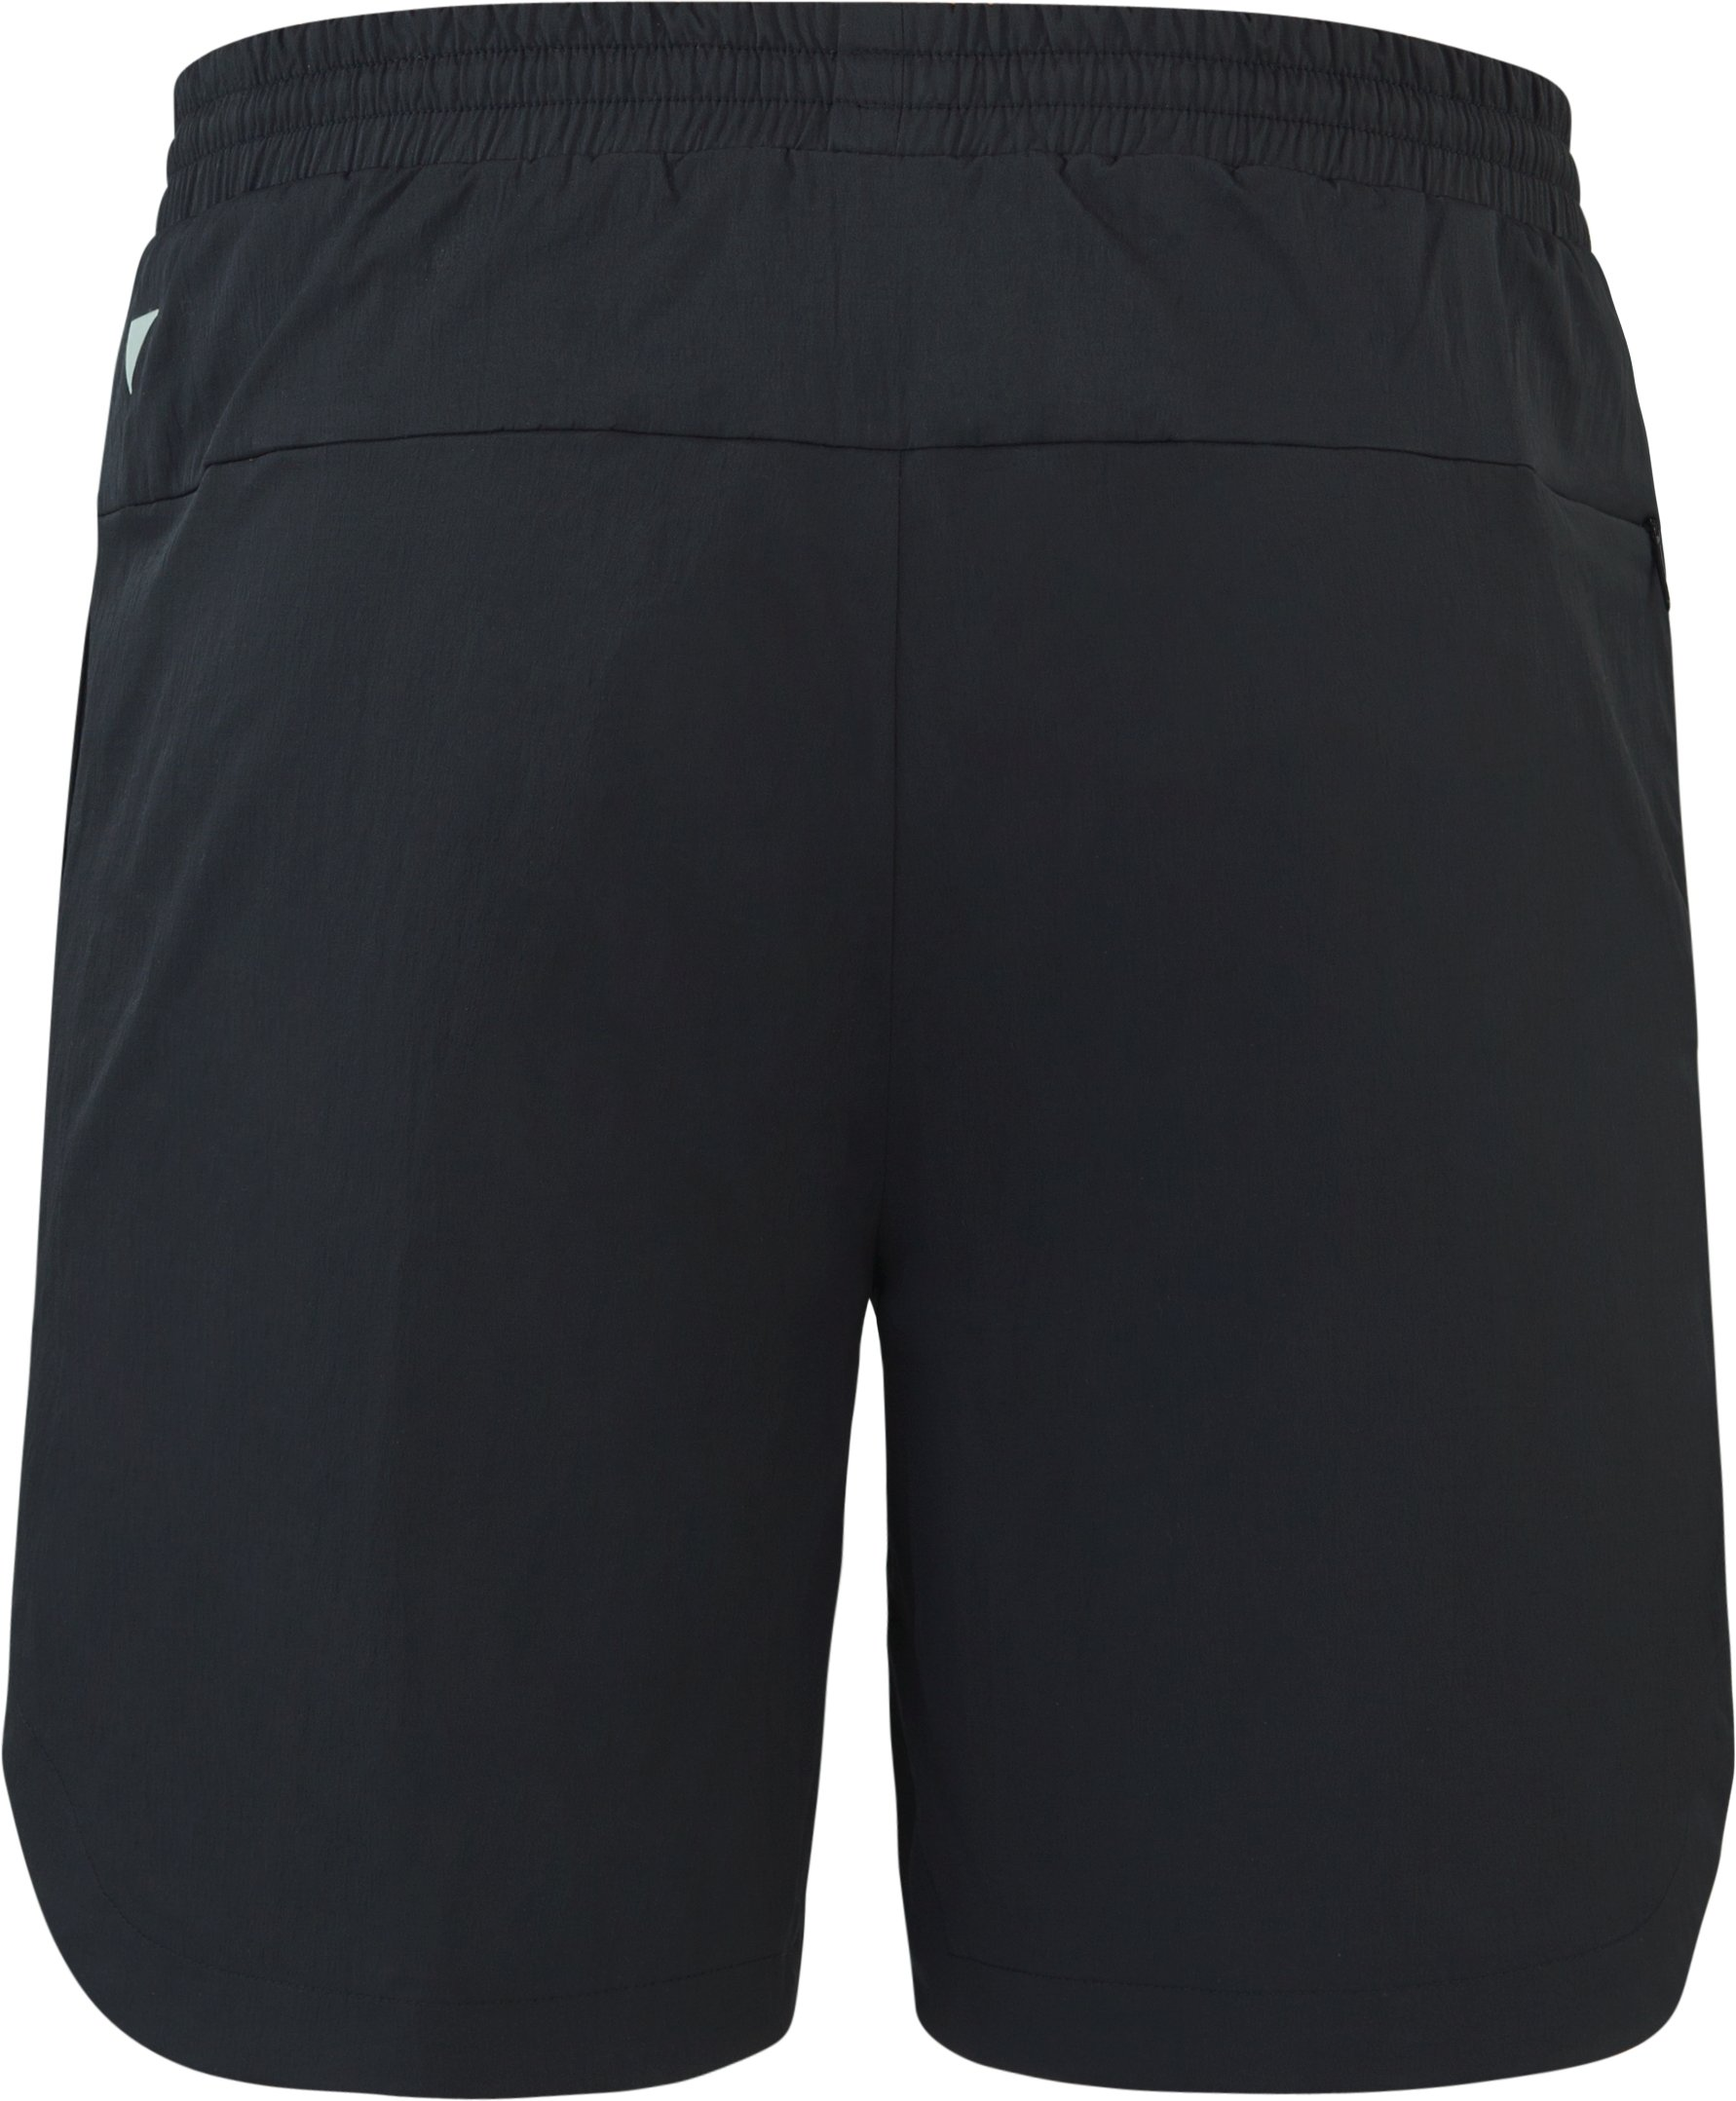 Men's UAS Hybrid Bamboo Shorts, Black ,